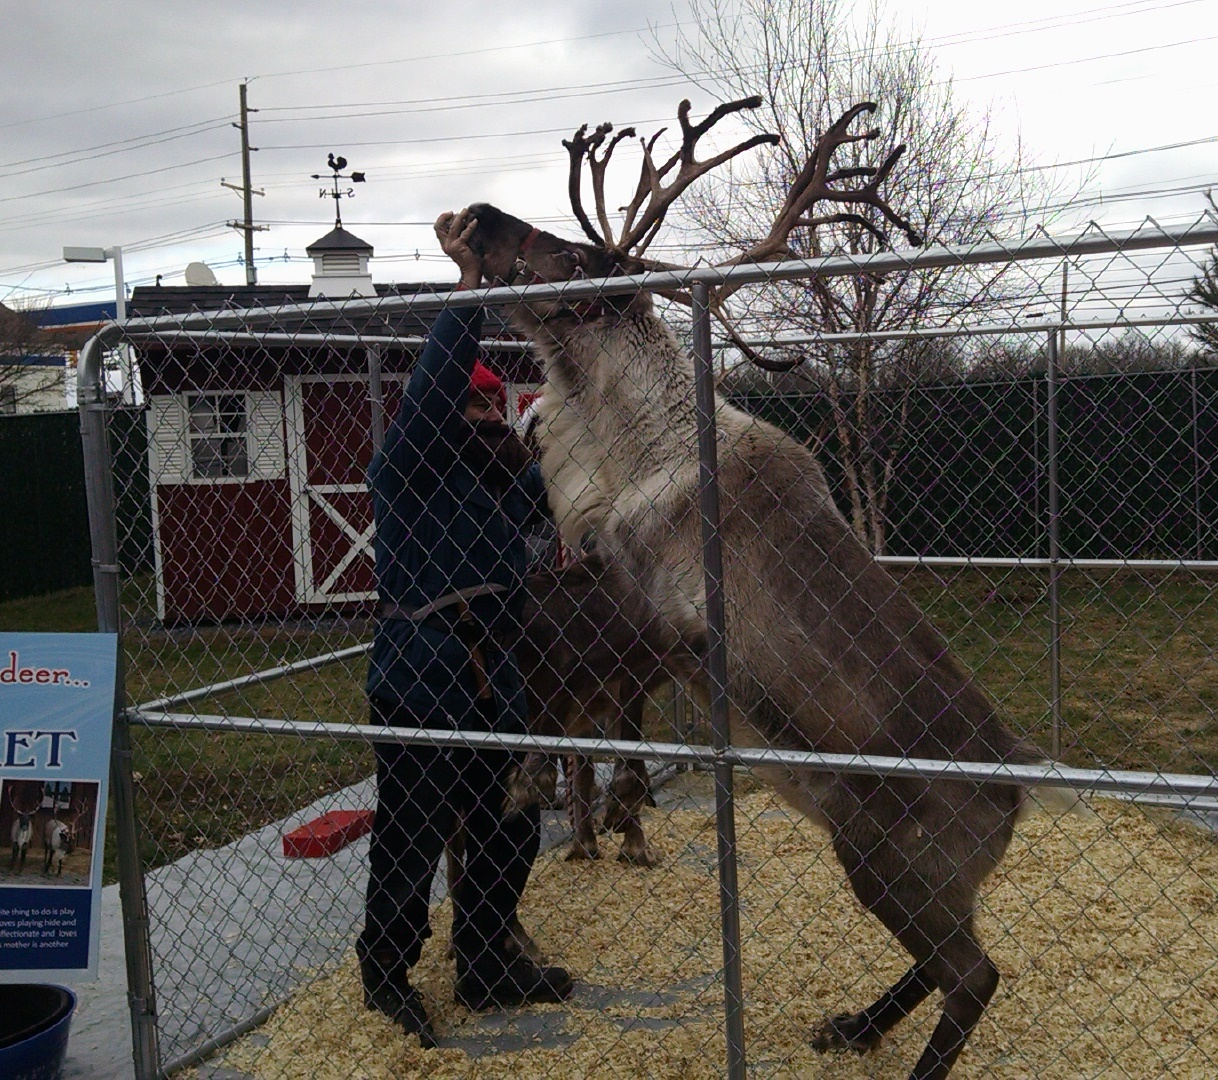 Reindeer Fetch dancing at 2014 Reindeer event and Open House Belle Mead Animal Hospital